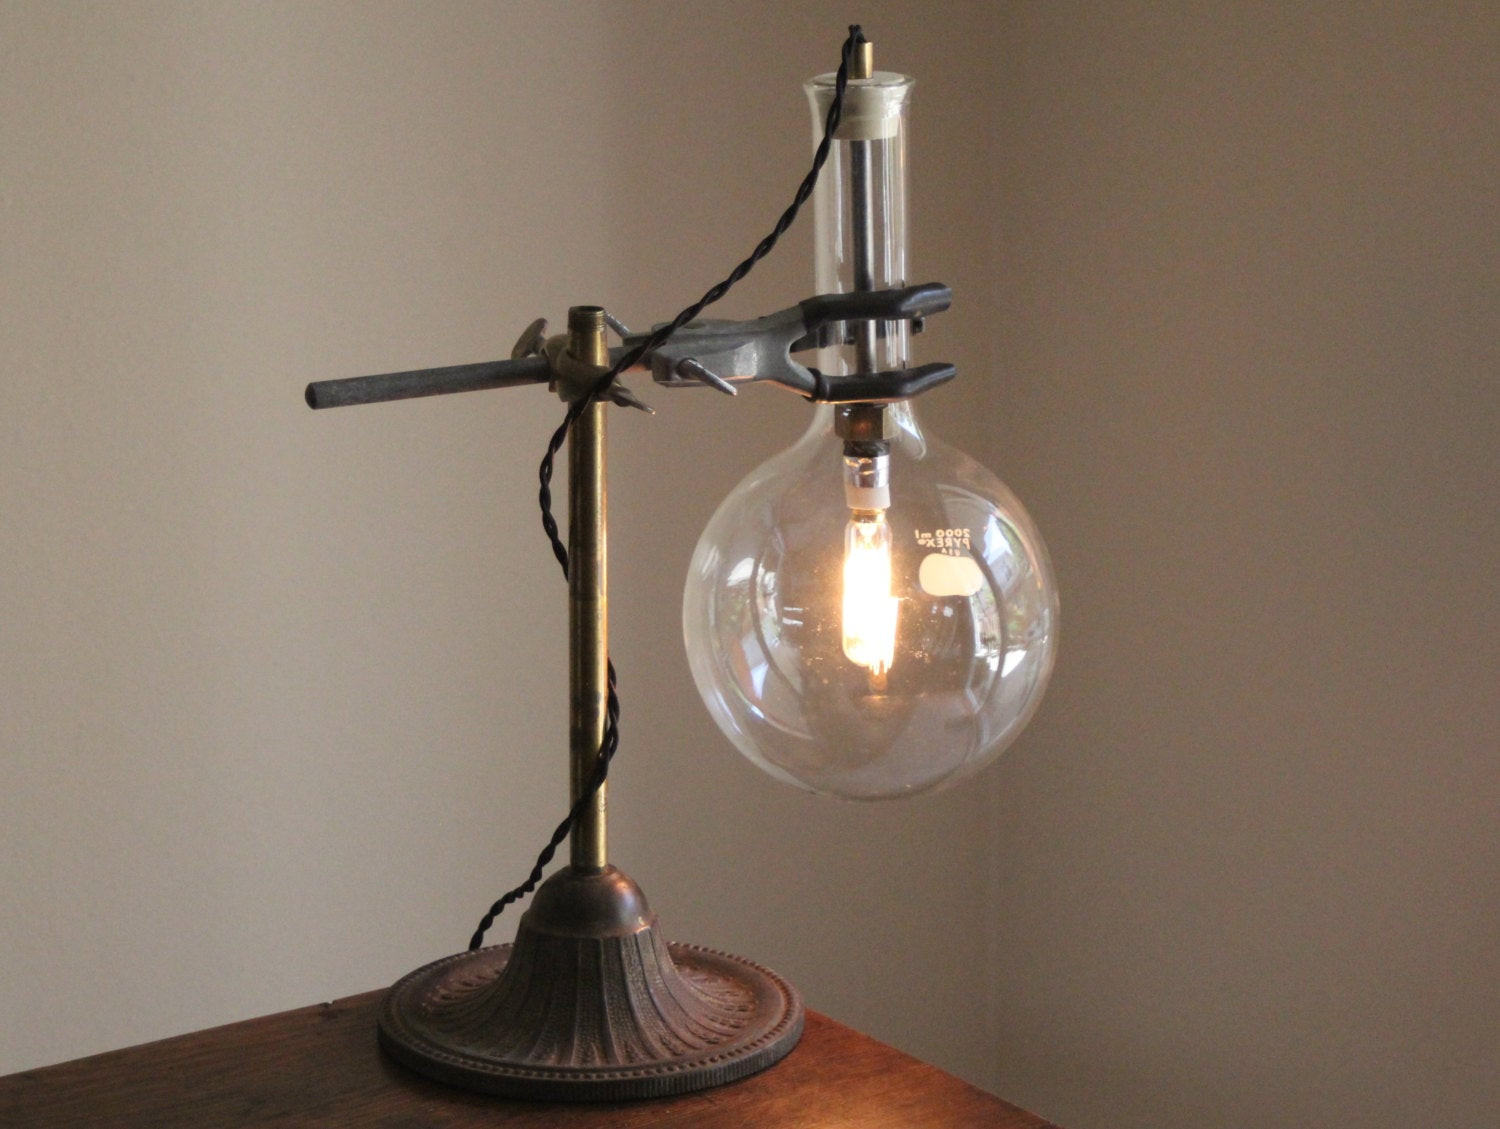 Best ideas about Steampunk Desk Lamp . Save or Pin Steampunk lamp Industrial desk light science chemistry table Now.